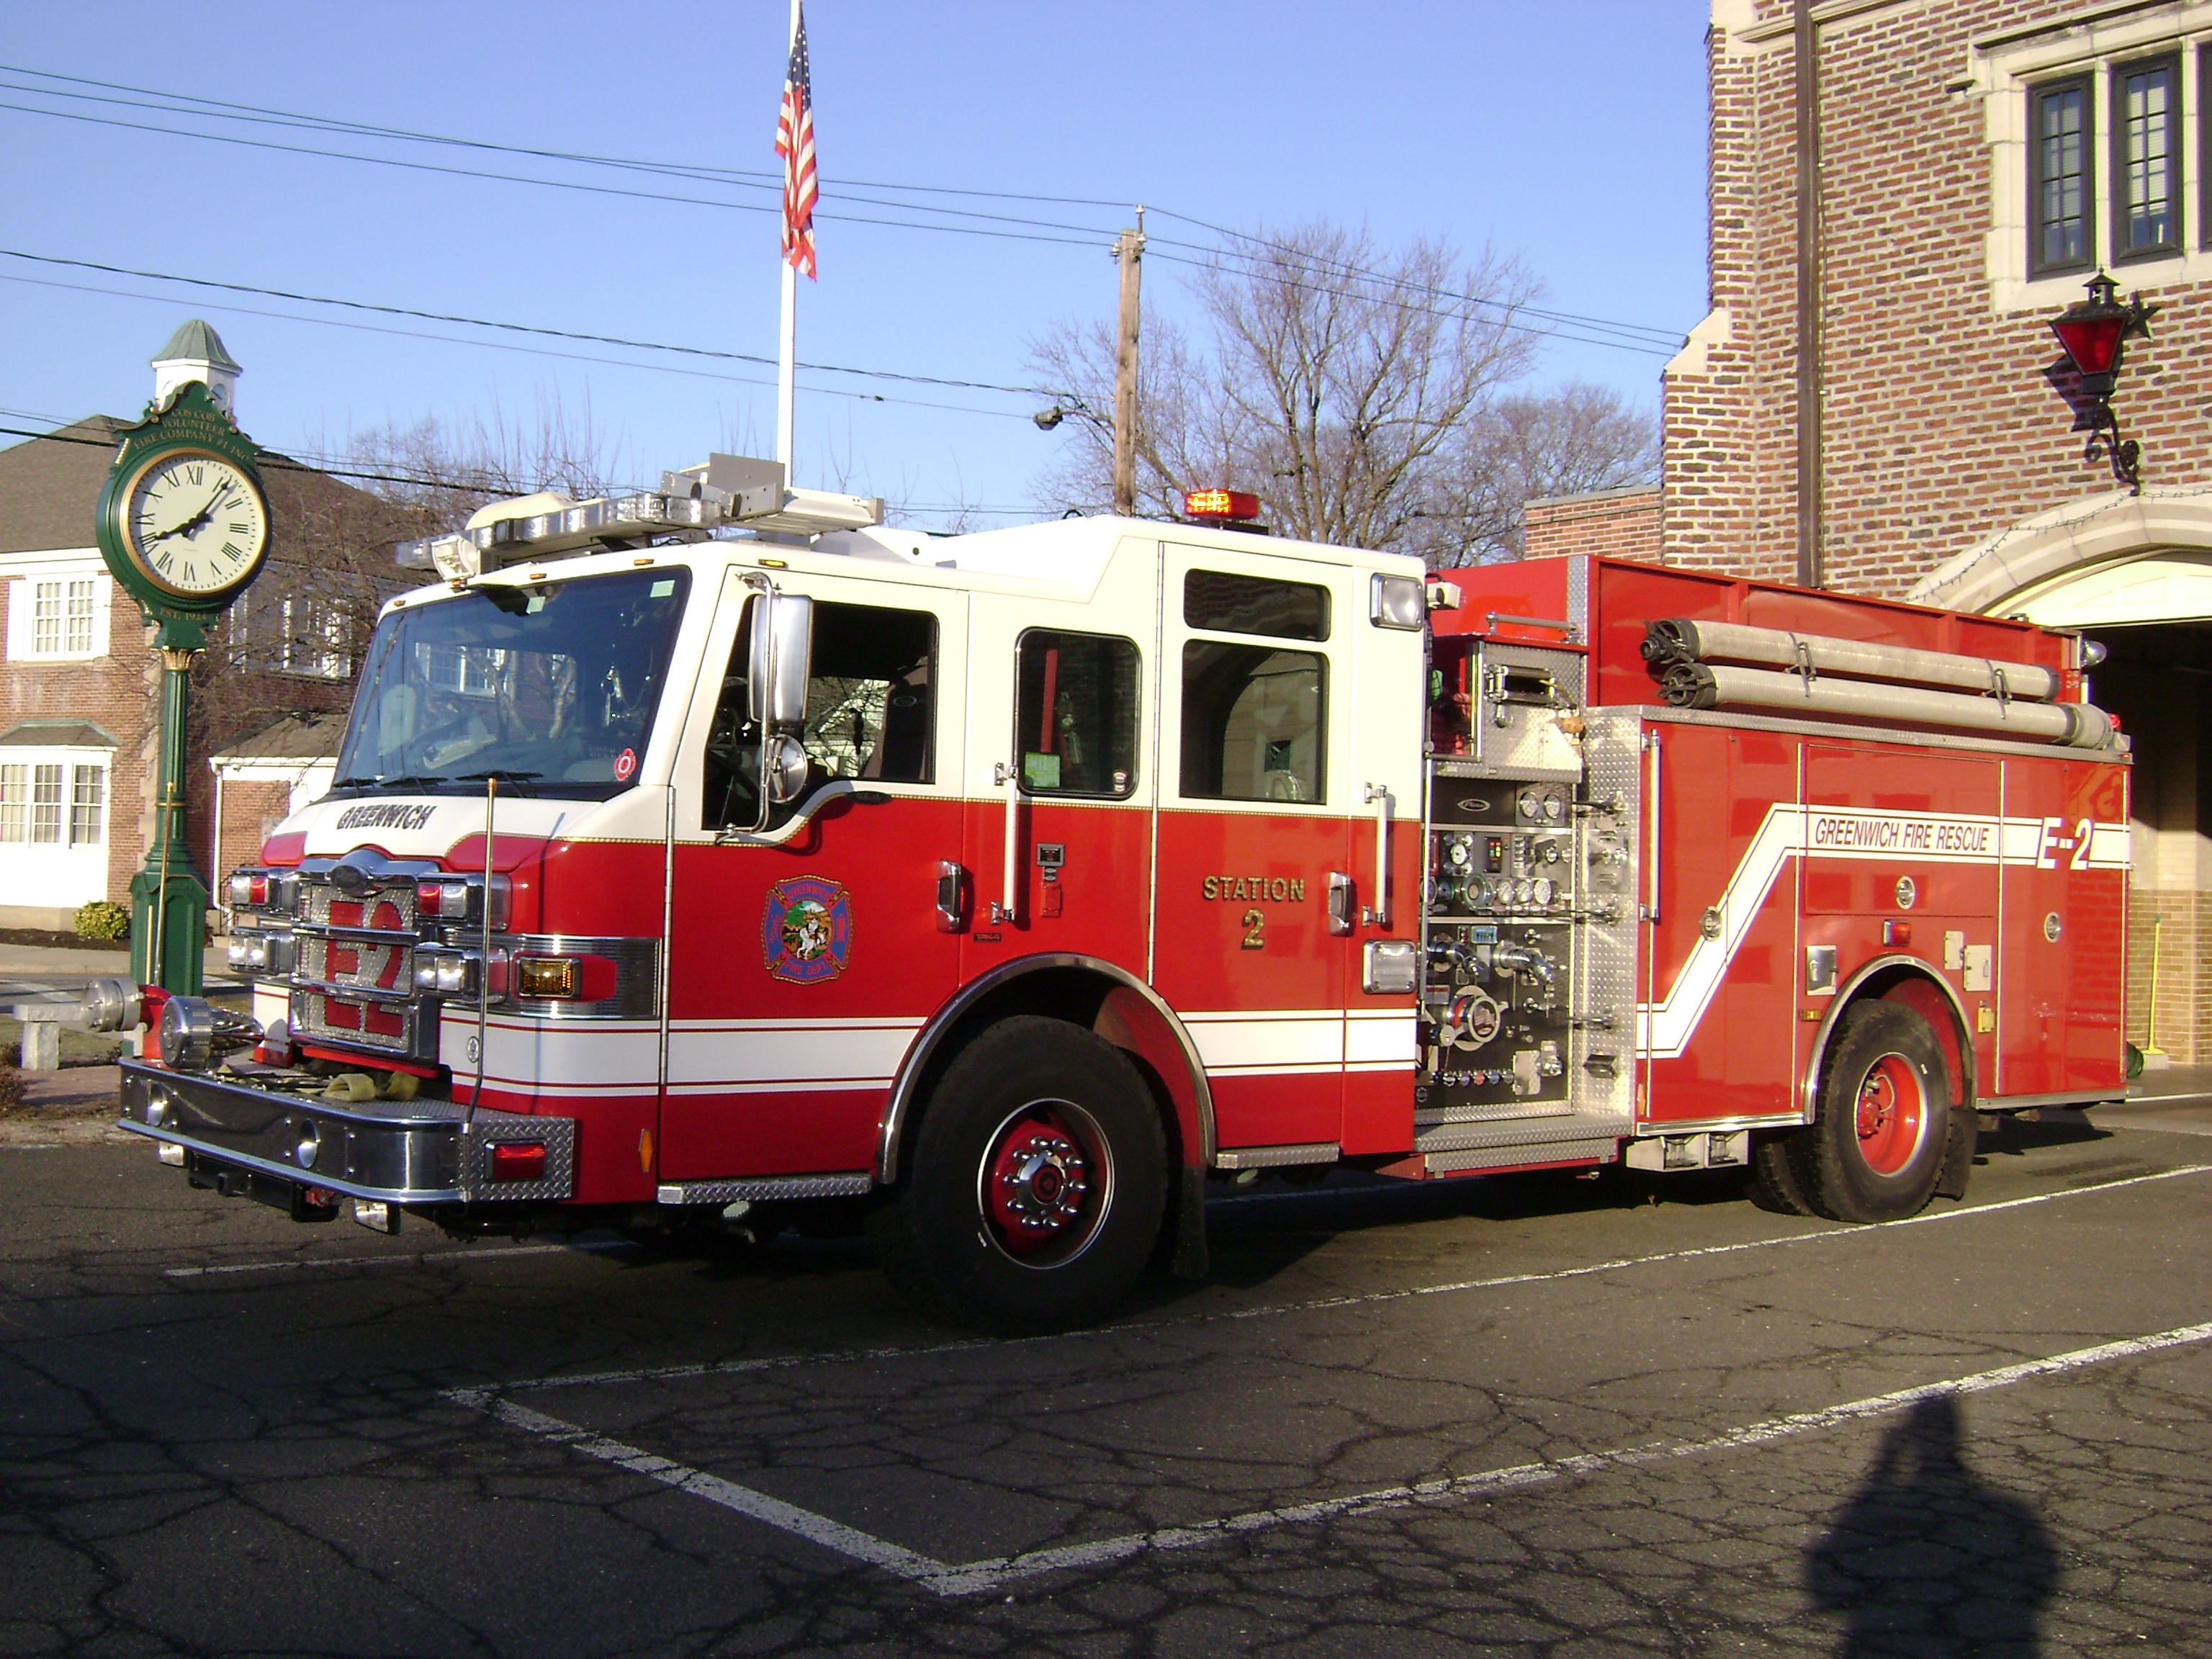 Engine 2 is a 2009 Pierce Enforce, fitted with a Hale pump, and has a 1,000 gallon tank capacity.